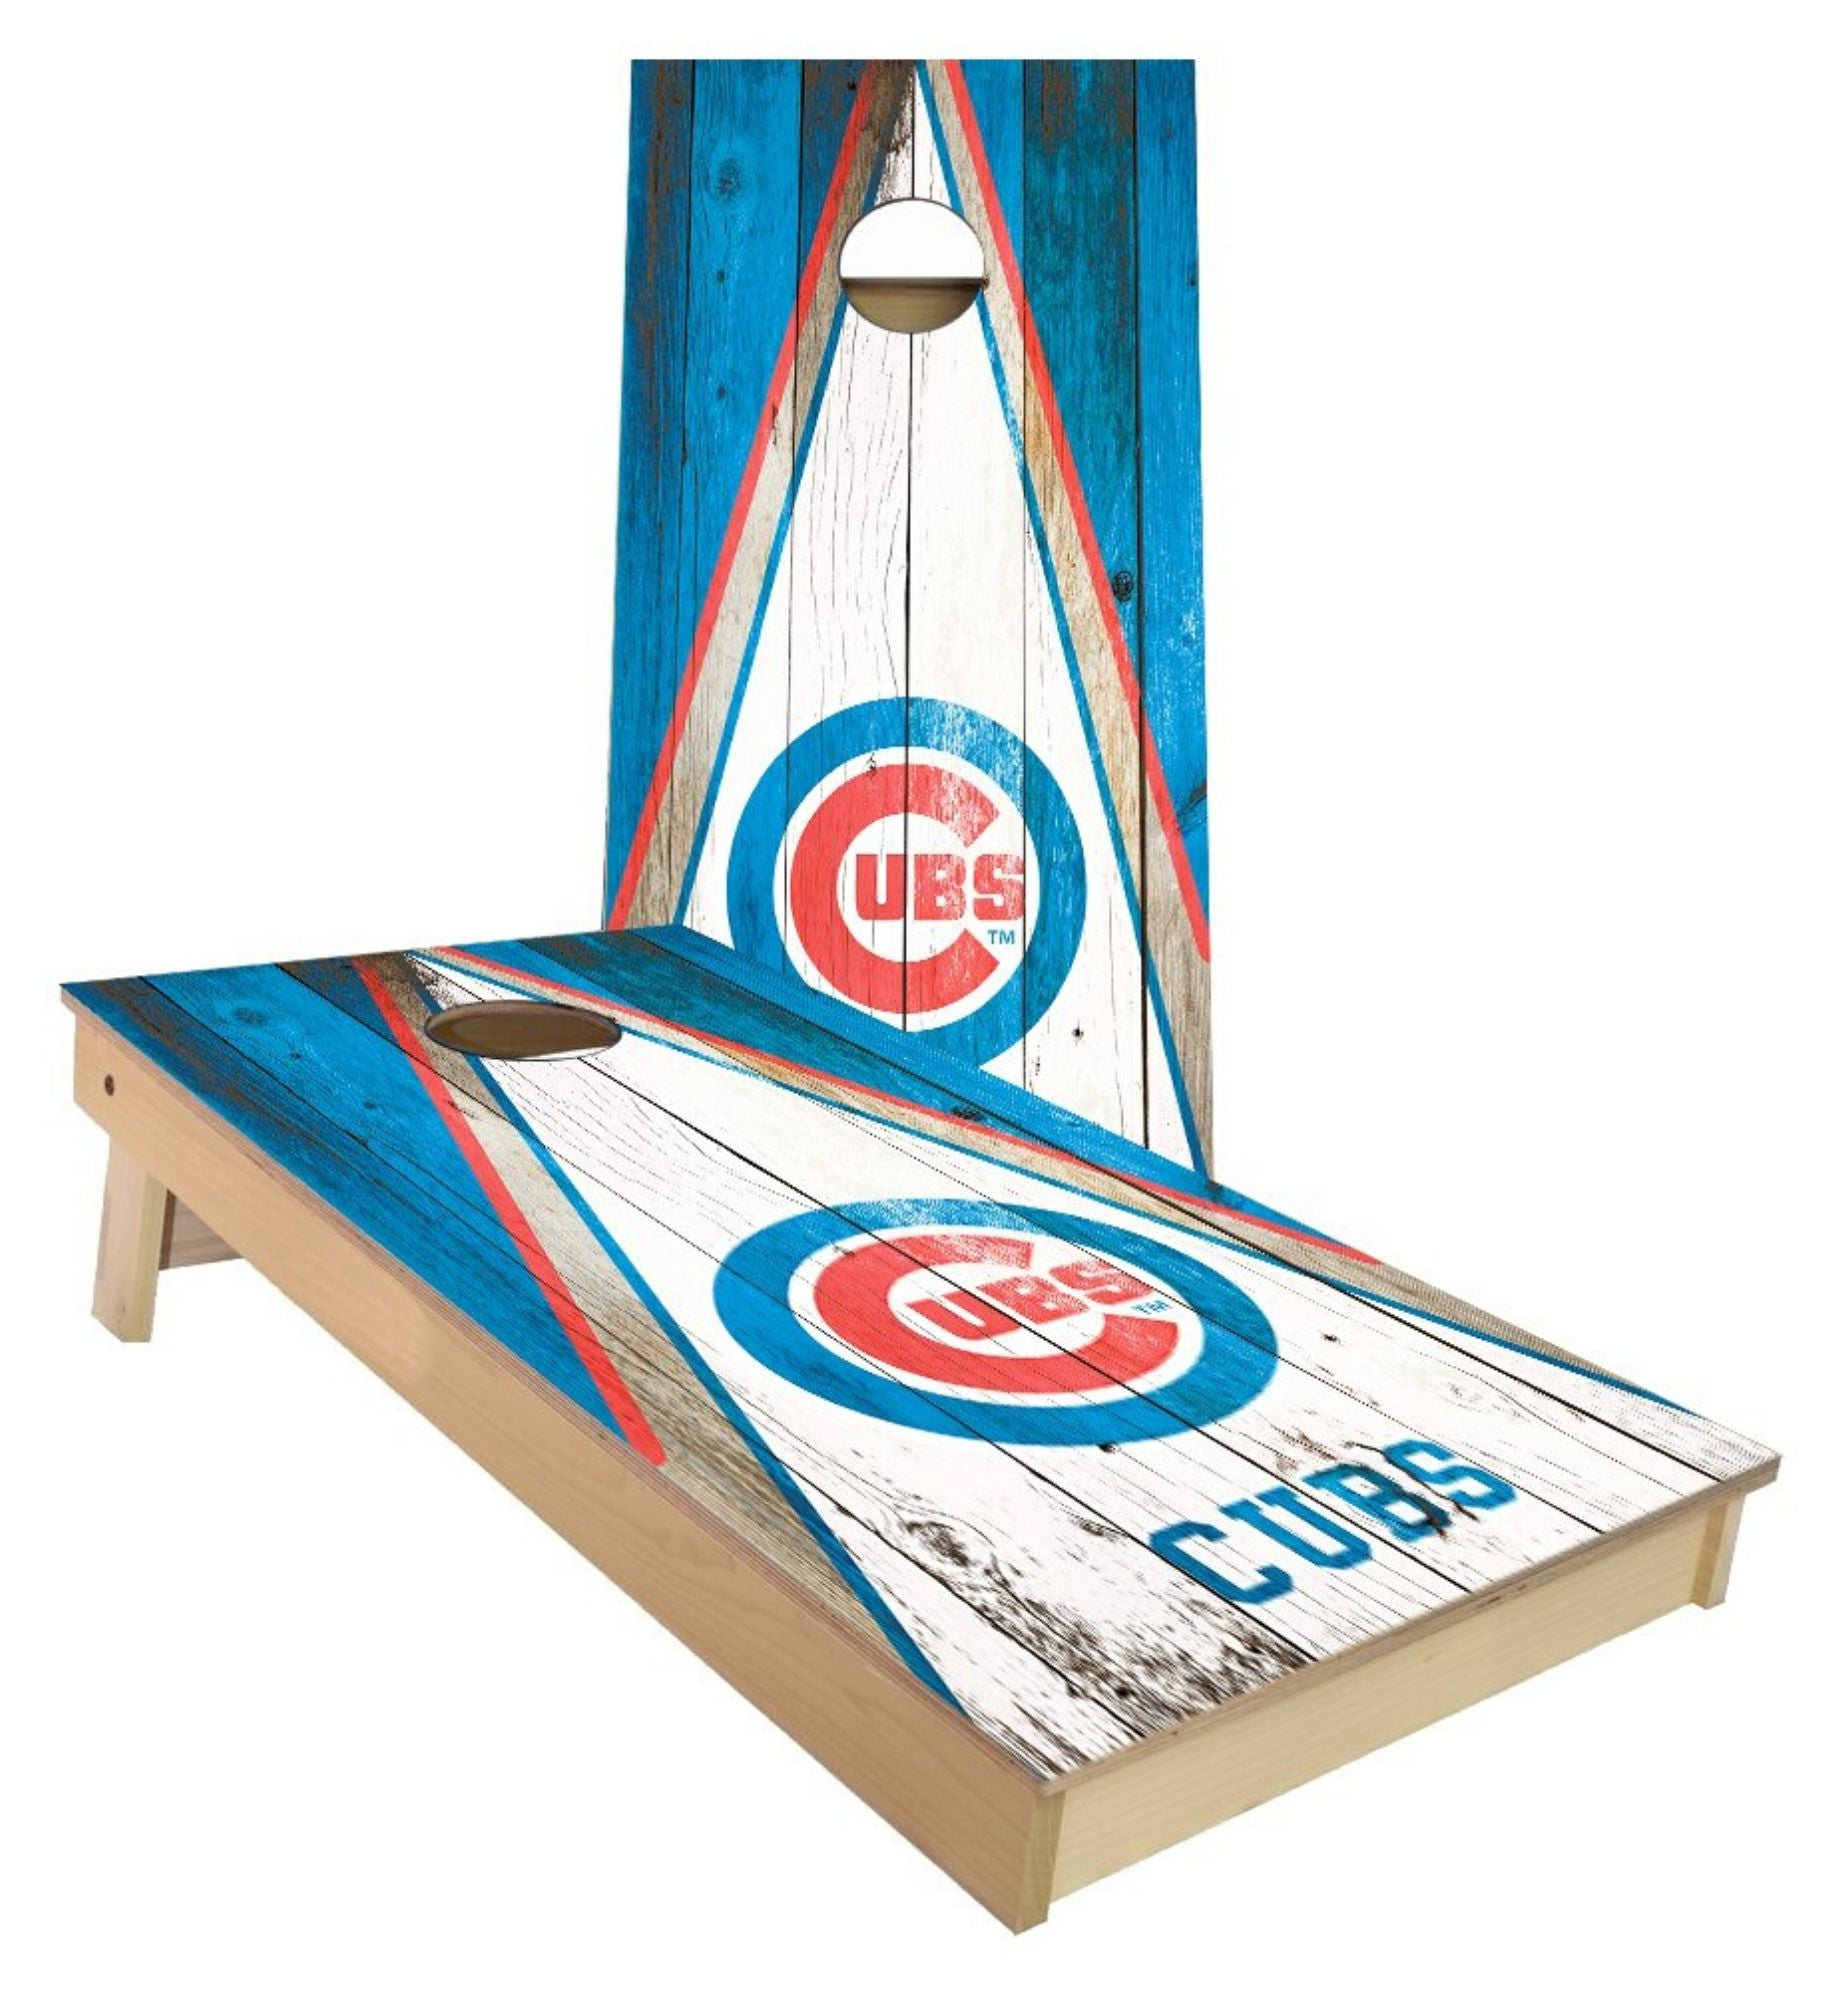 Regulation Chicago Cubs cornhole boards. Customizable premium quality cornhole set.